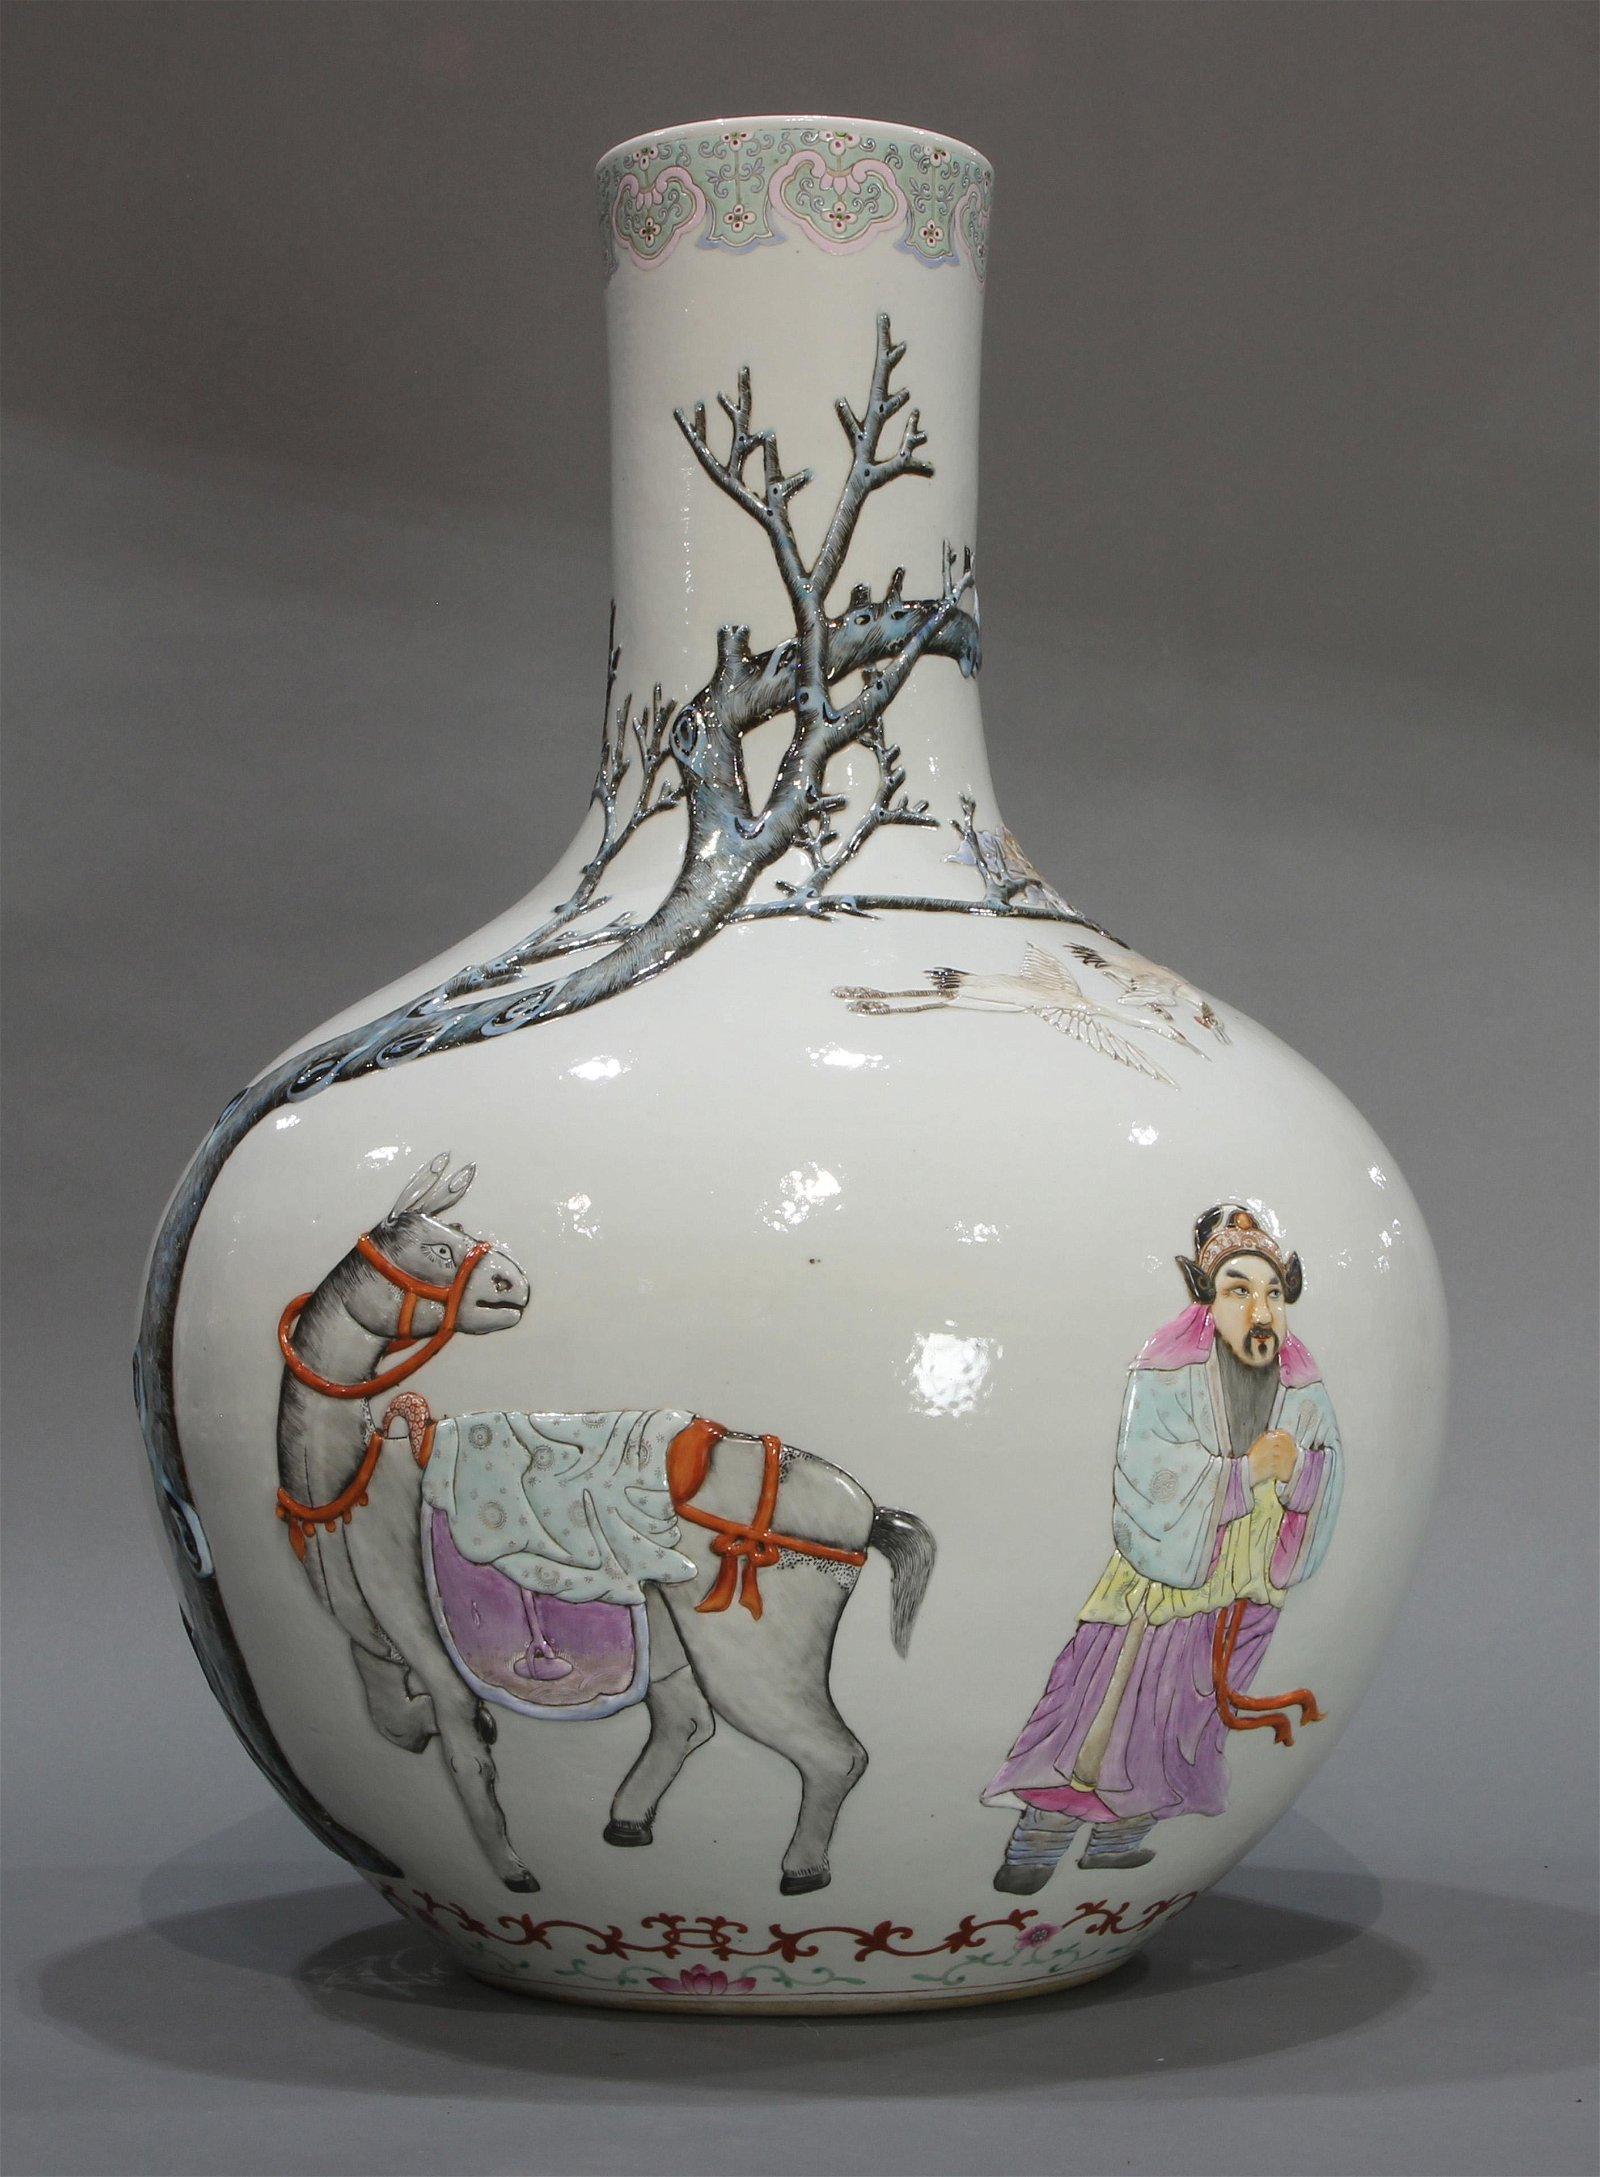 A Large Chinese Famille Rose 'Figure' Bottle Vase with